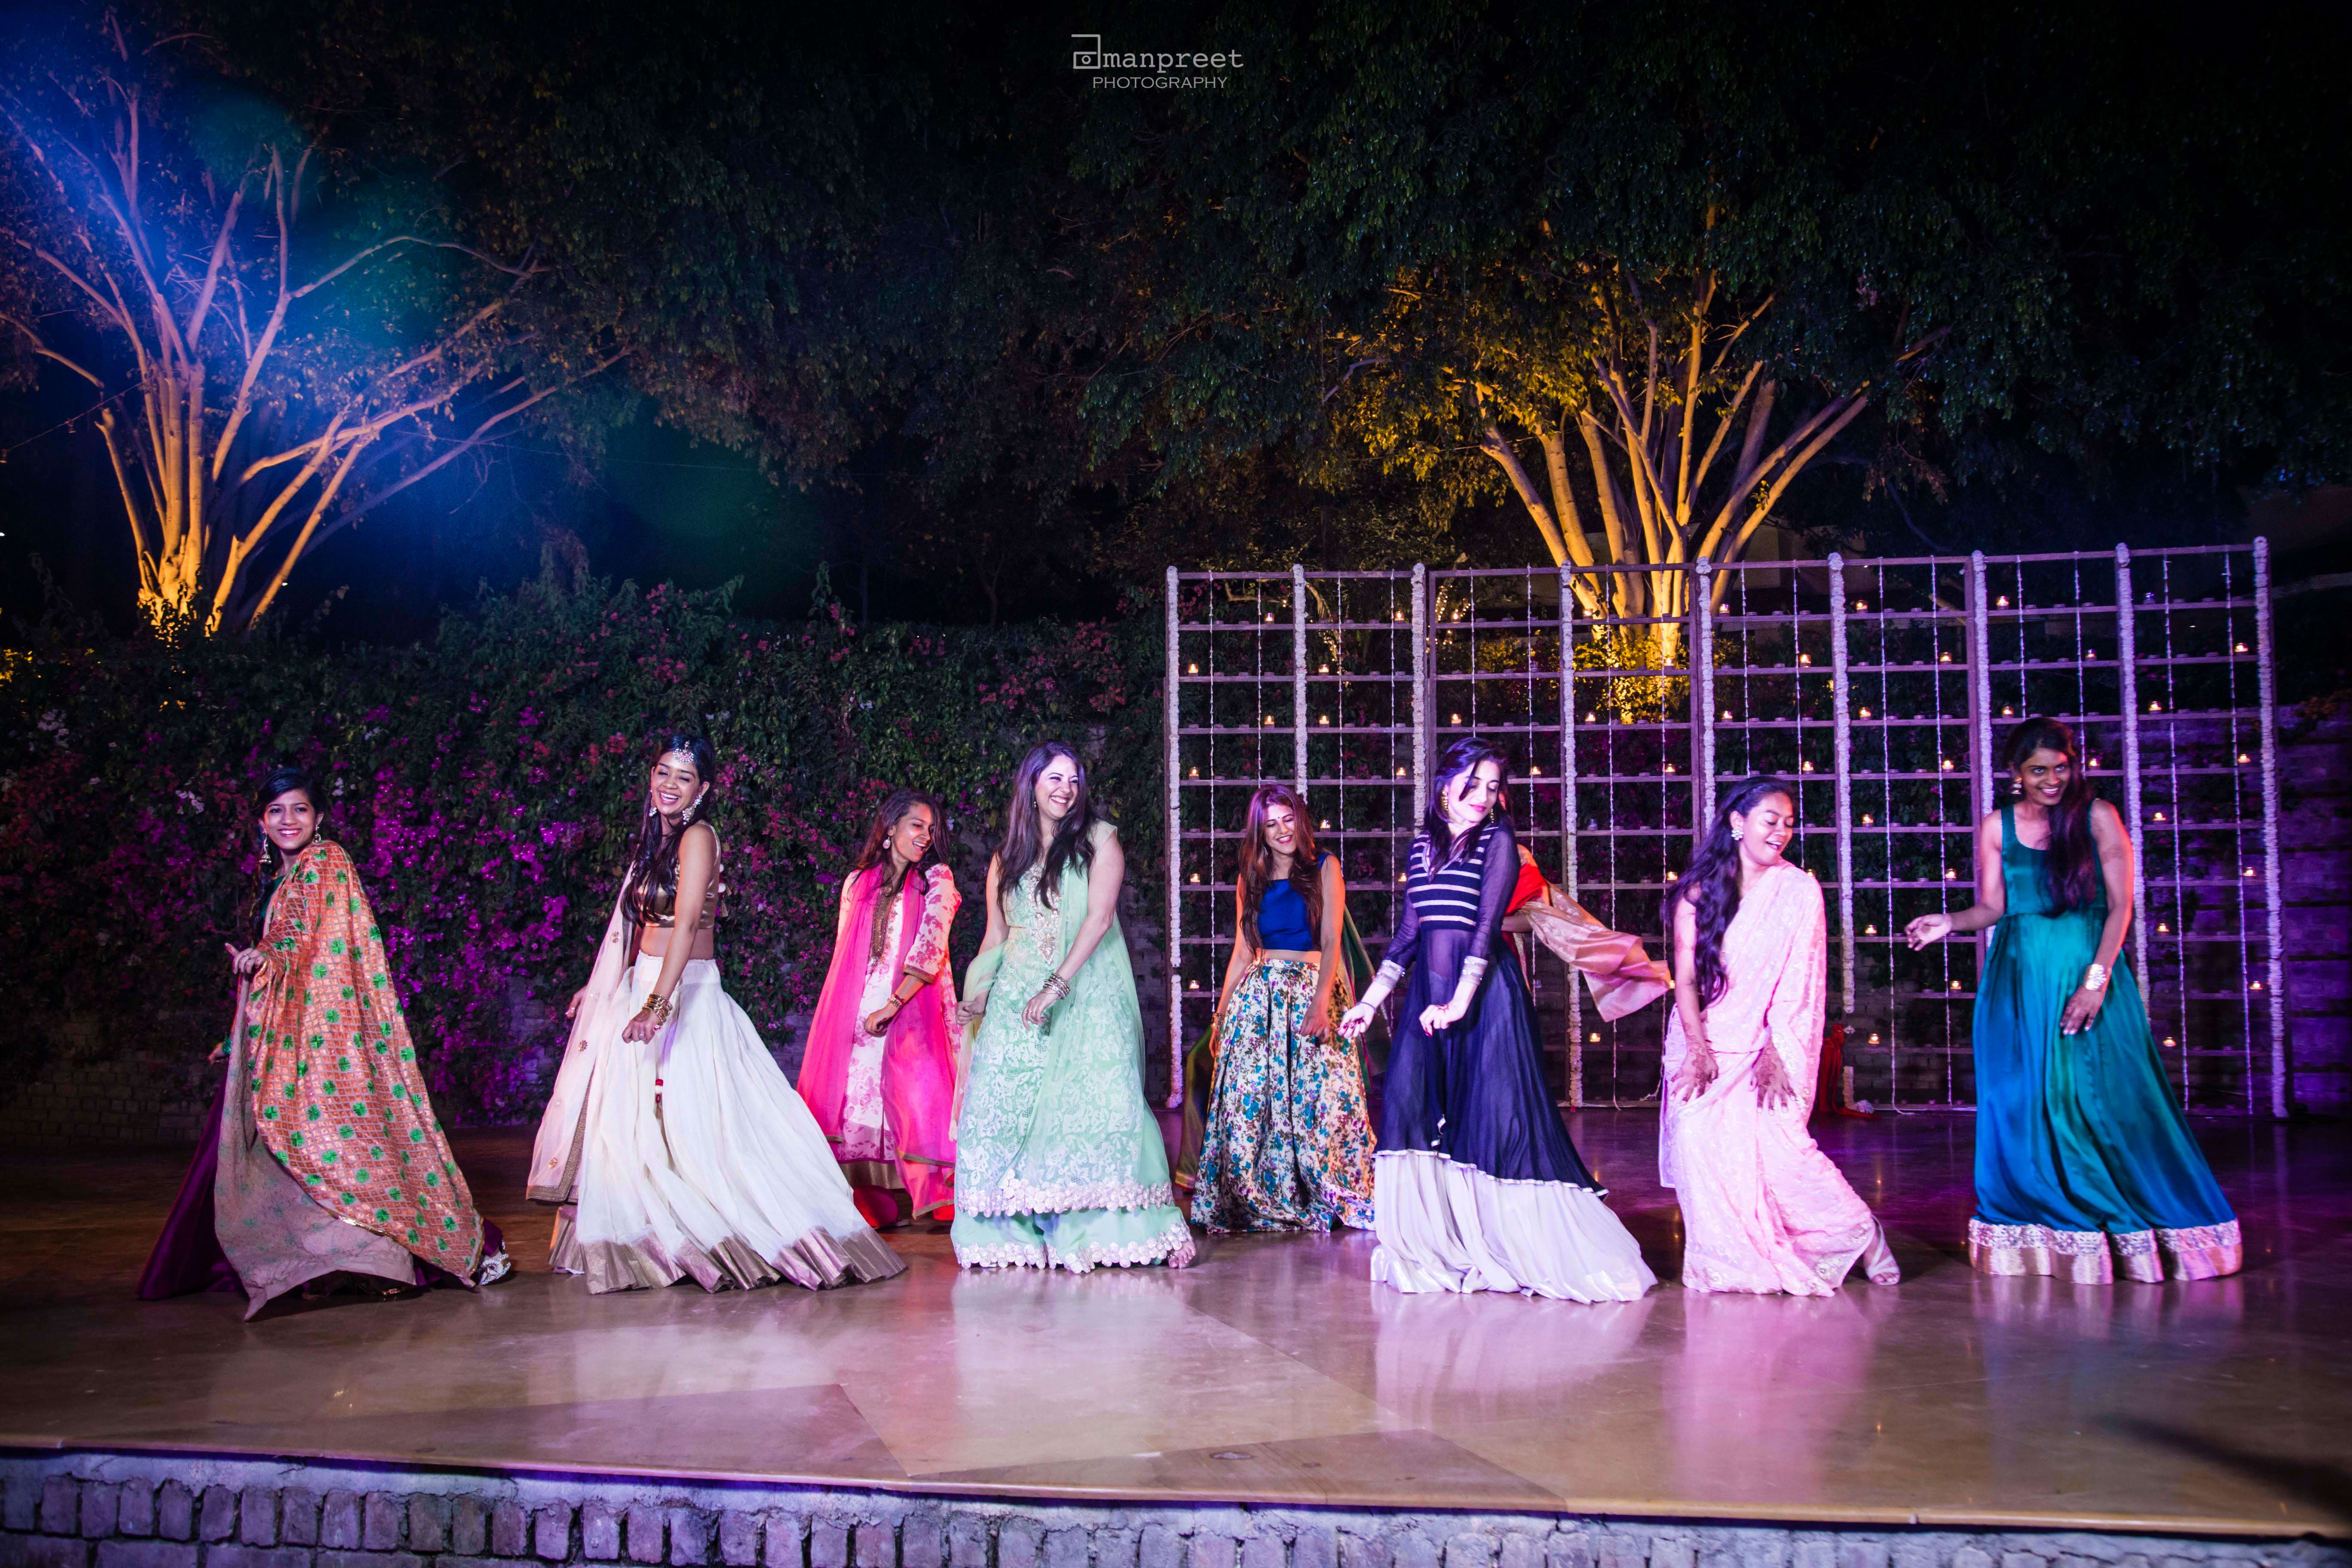 the group dance!:geetanjali salon, raju mehandi wala, amanpreet photography, ole couture